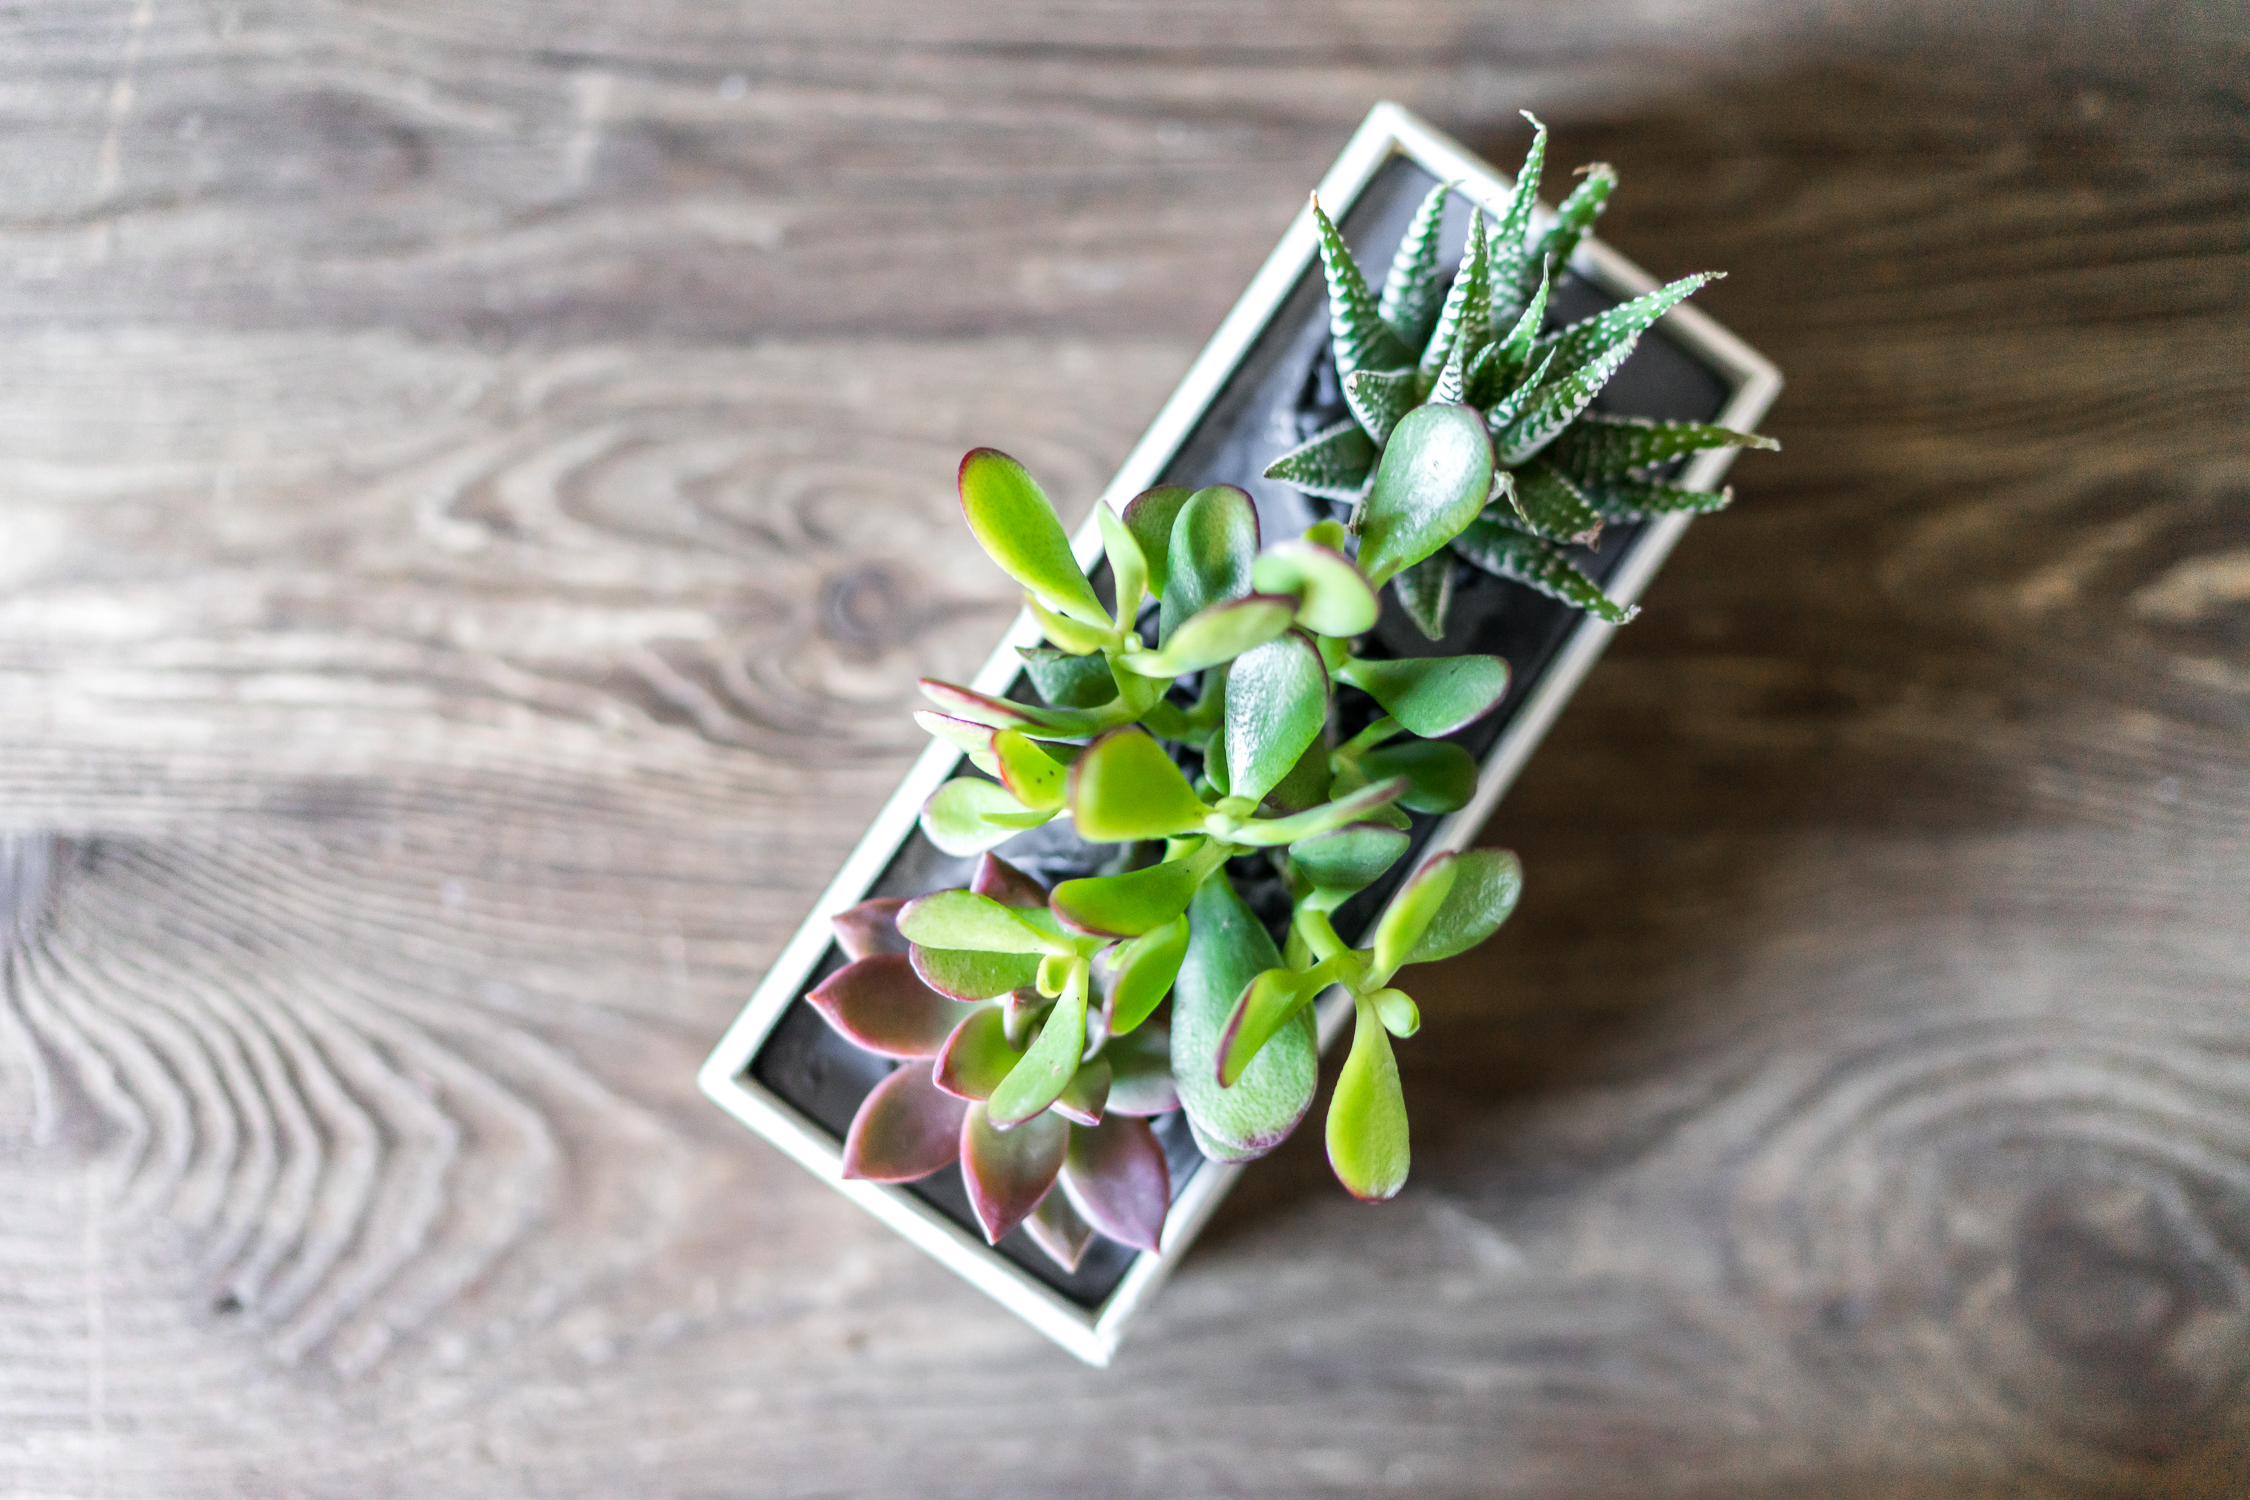 Our Favorite Types of Plants